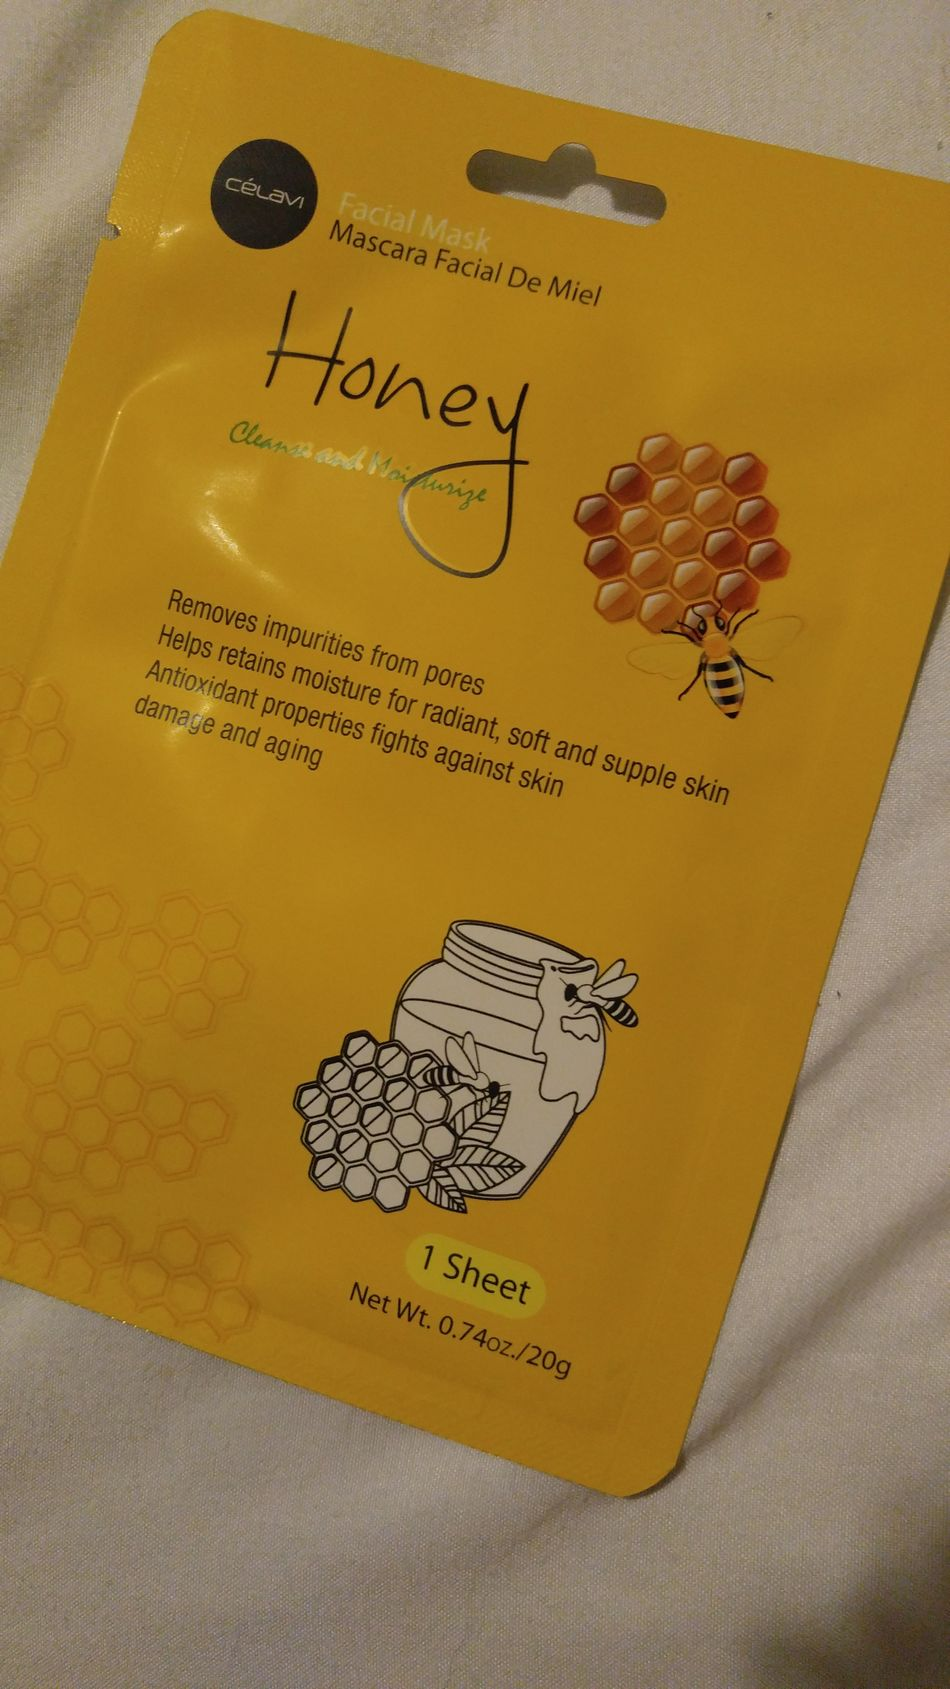 Cant wait to try my new Honey facial mask i got today at Rue 21. 🍯😍 Facialmask Honey Cleansing Healthy New Hello World Popular Photos Likes Allnatural Follow Enjoying Life